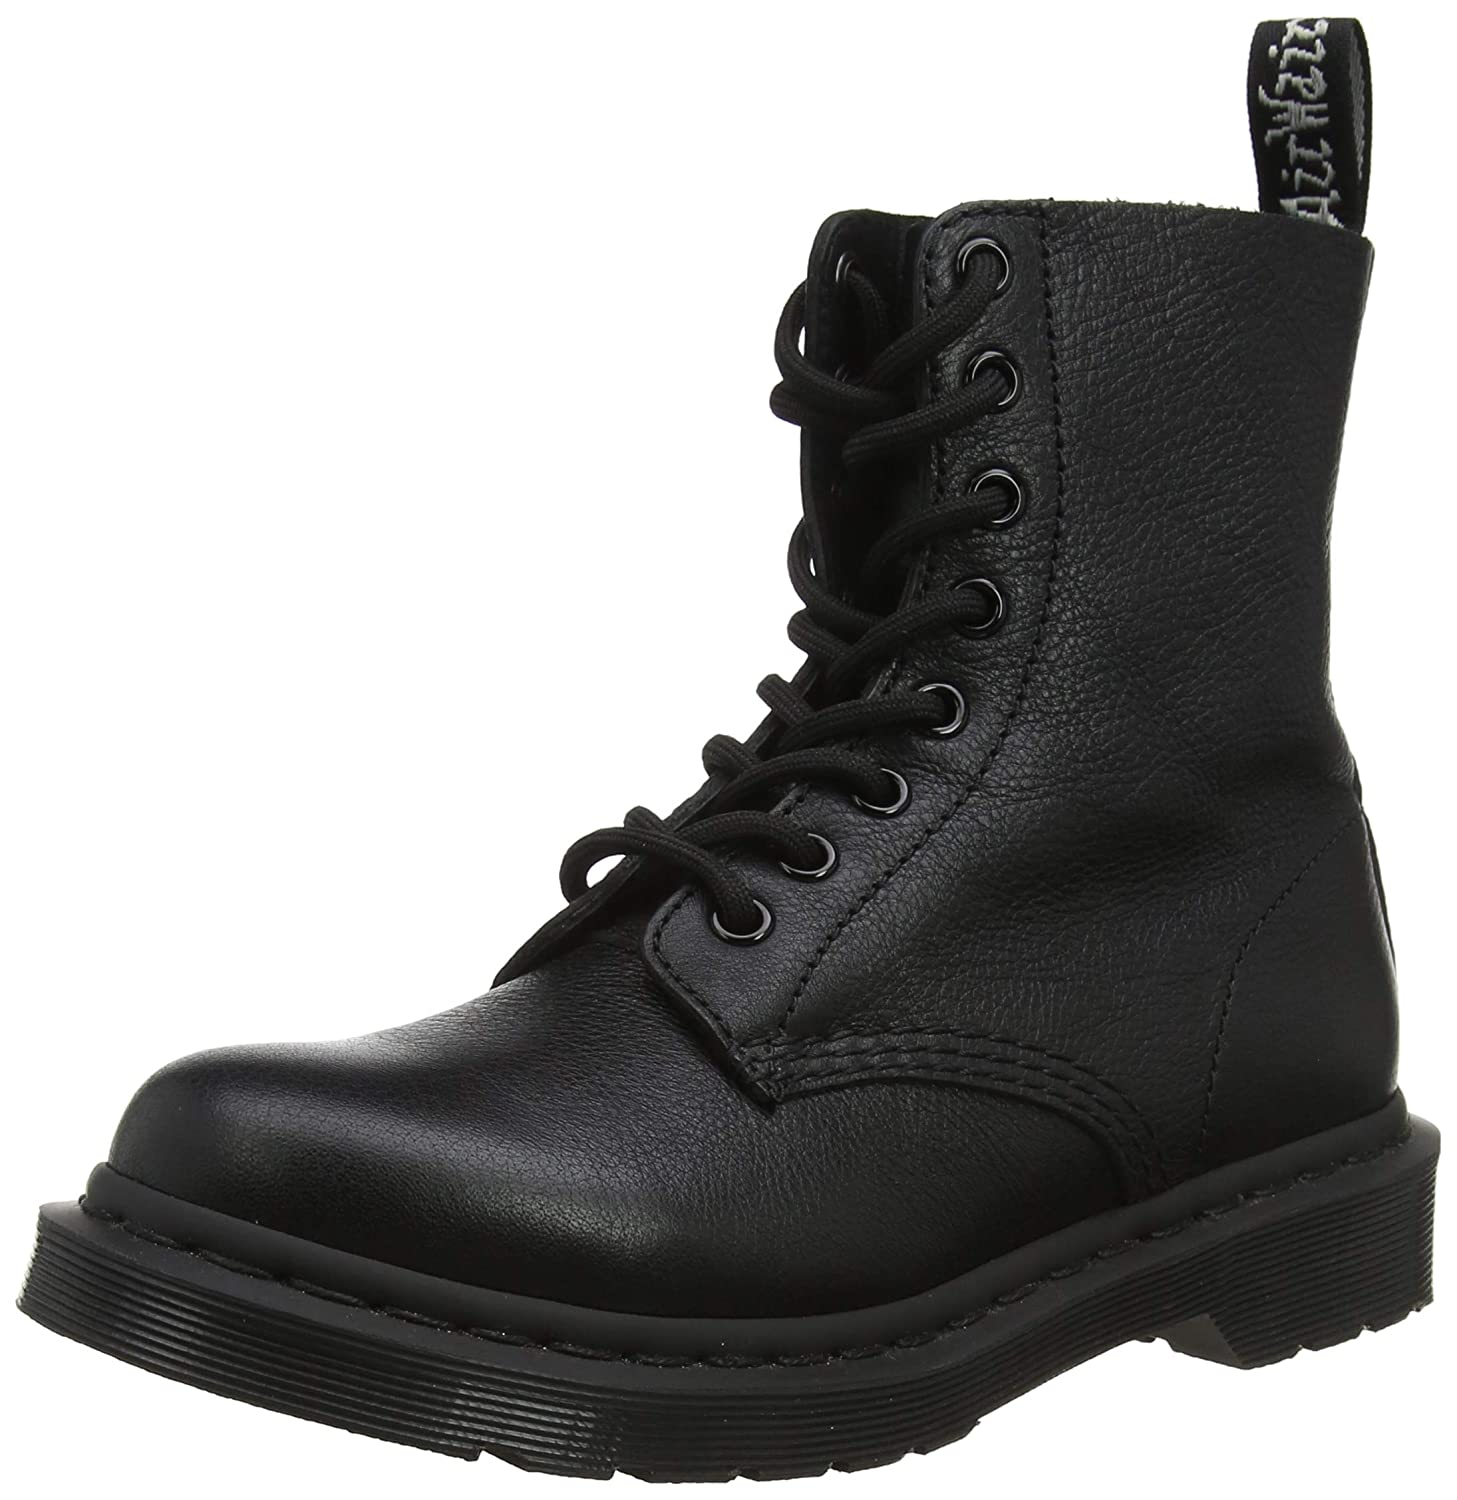 Details about Dr.Martens 1460 8 Eyelet Mono Smooth Black Womens Boots